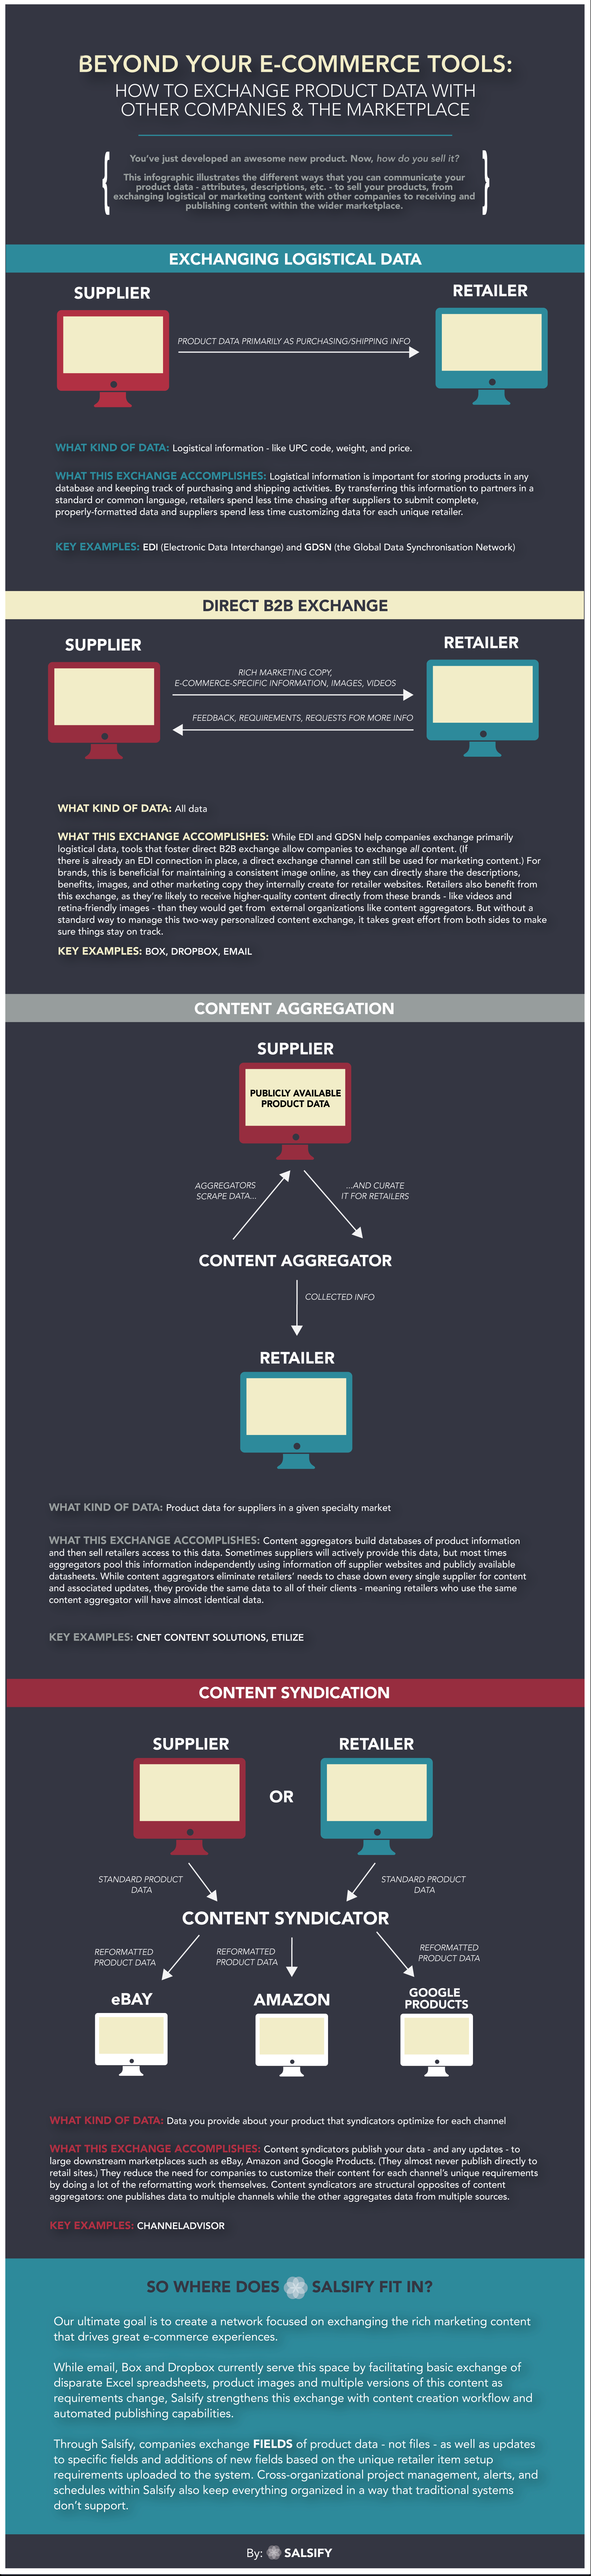 exchanging-product-content